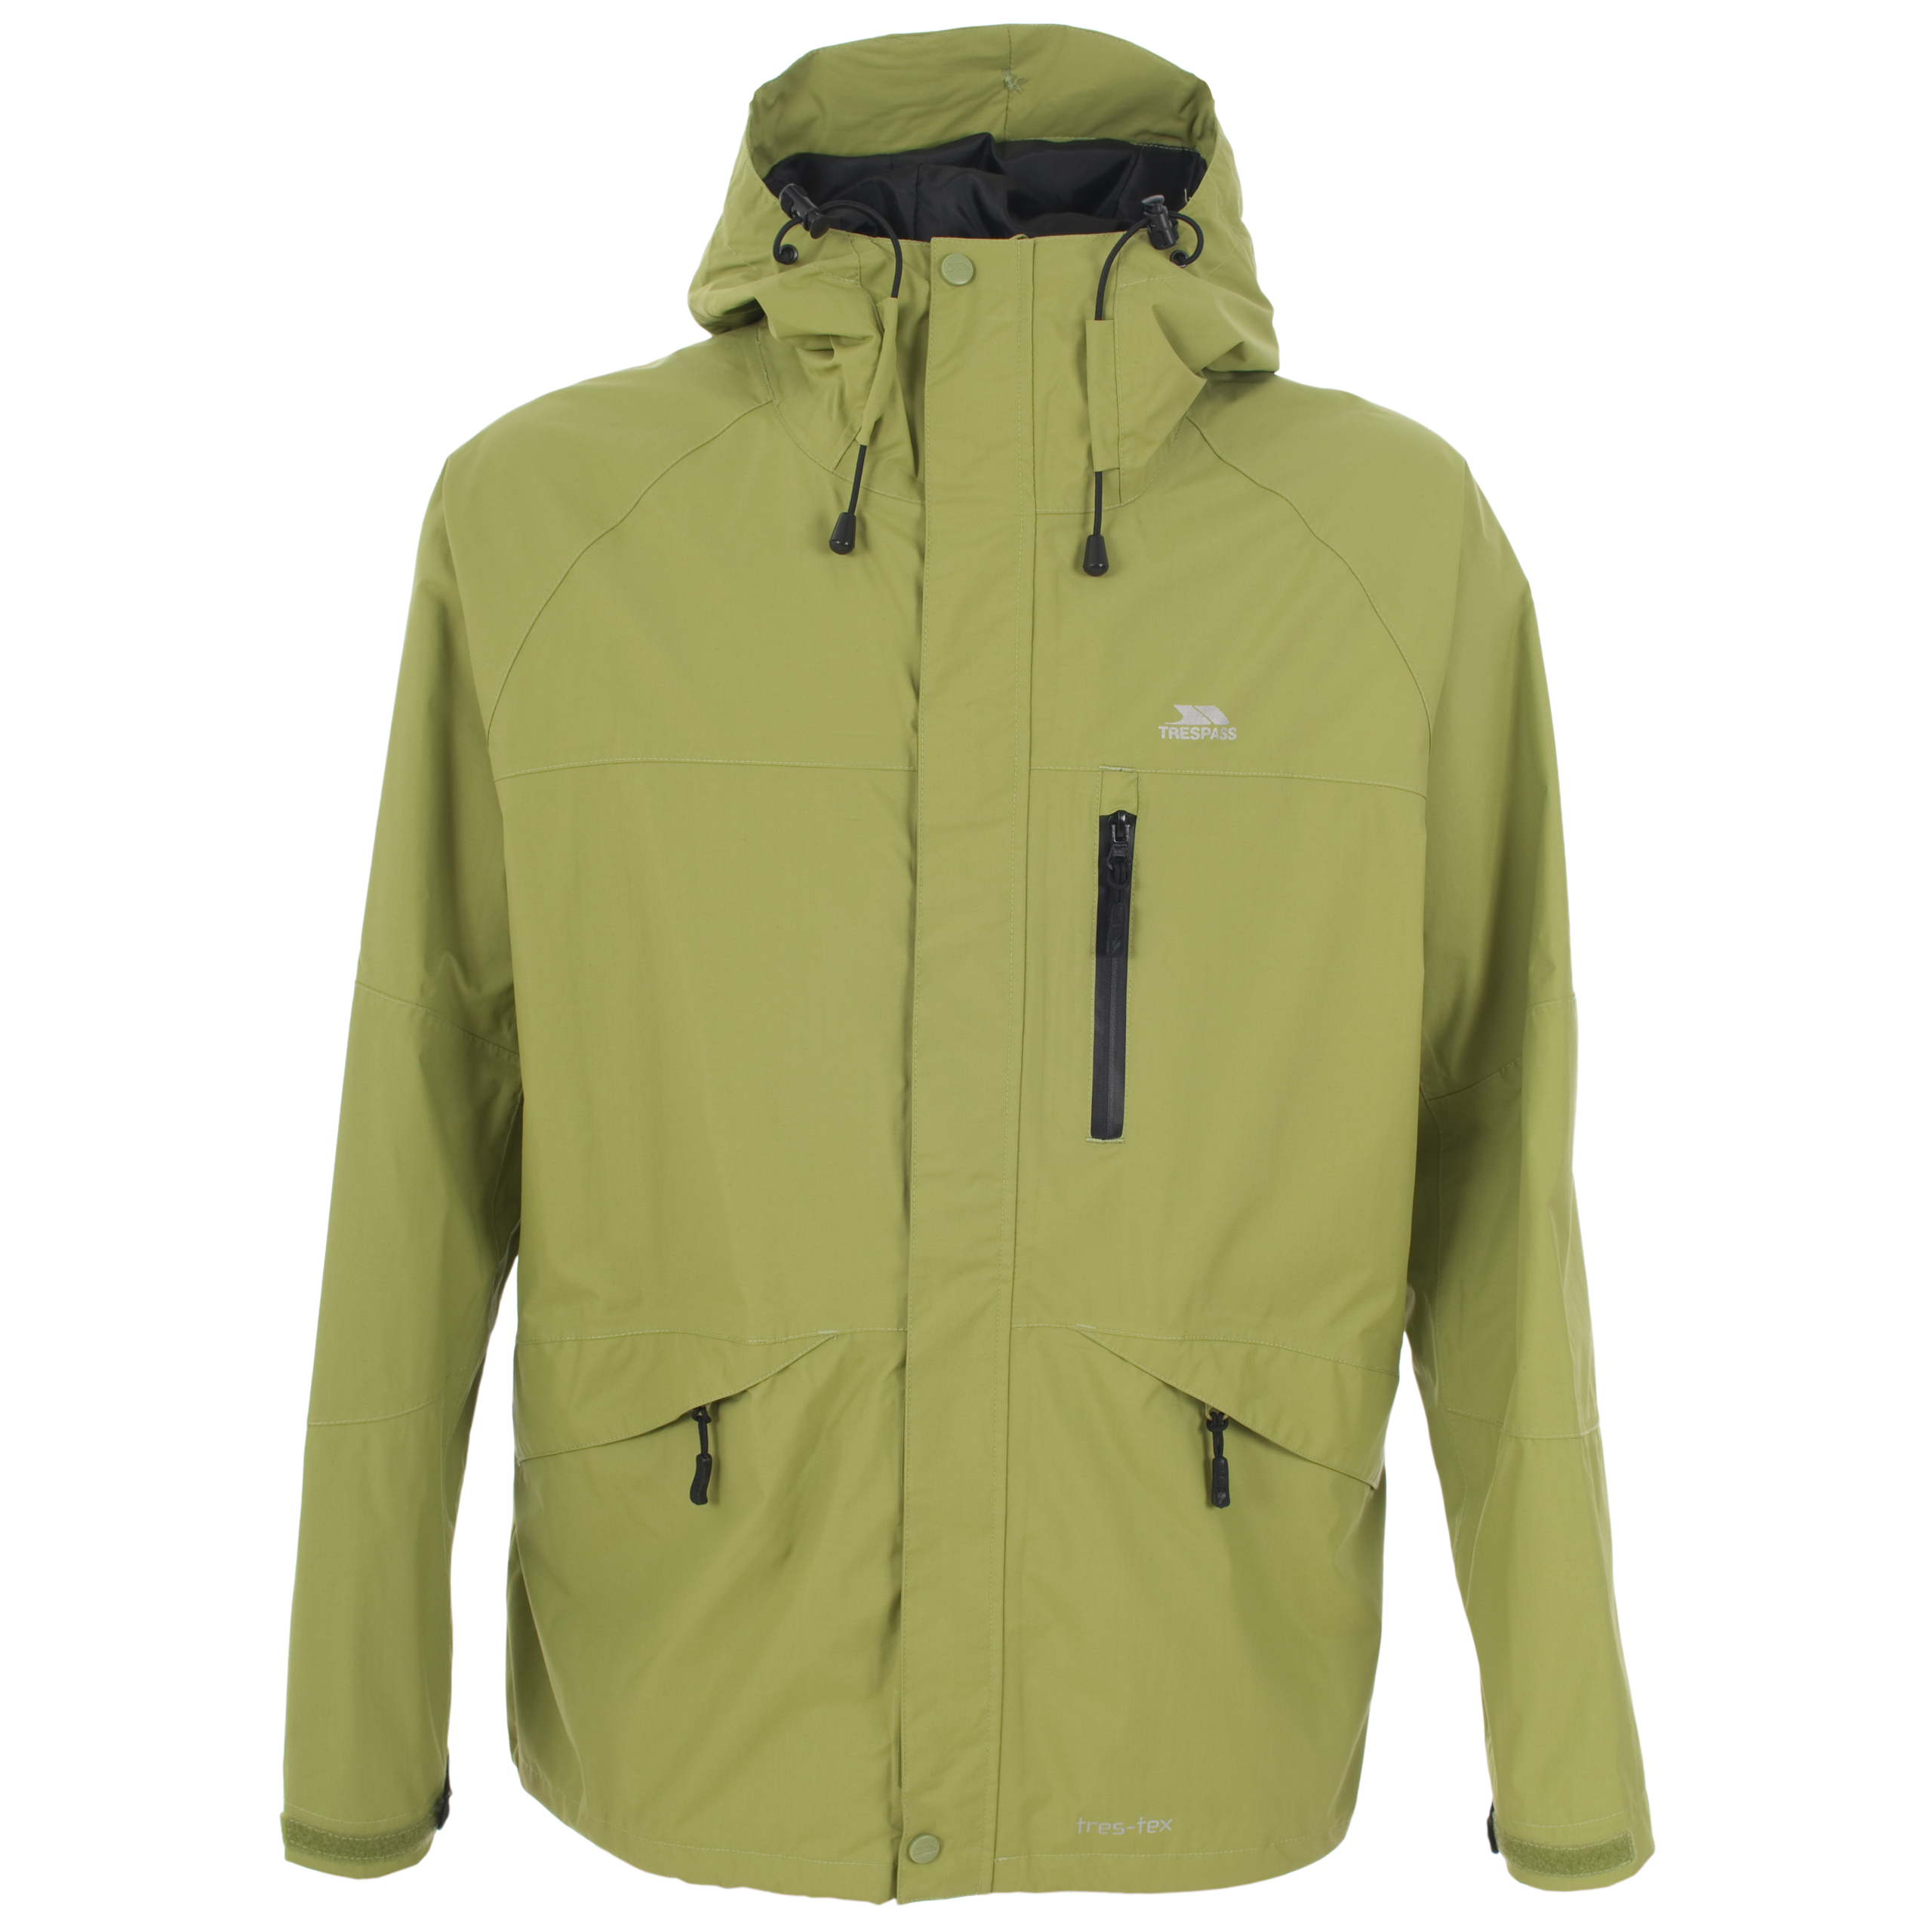 Trespass Mens Waterproof Windproof Breathable Warm Walking Jacket ...